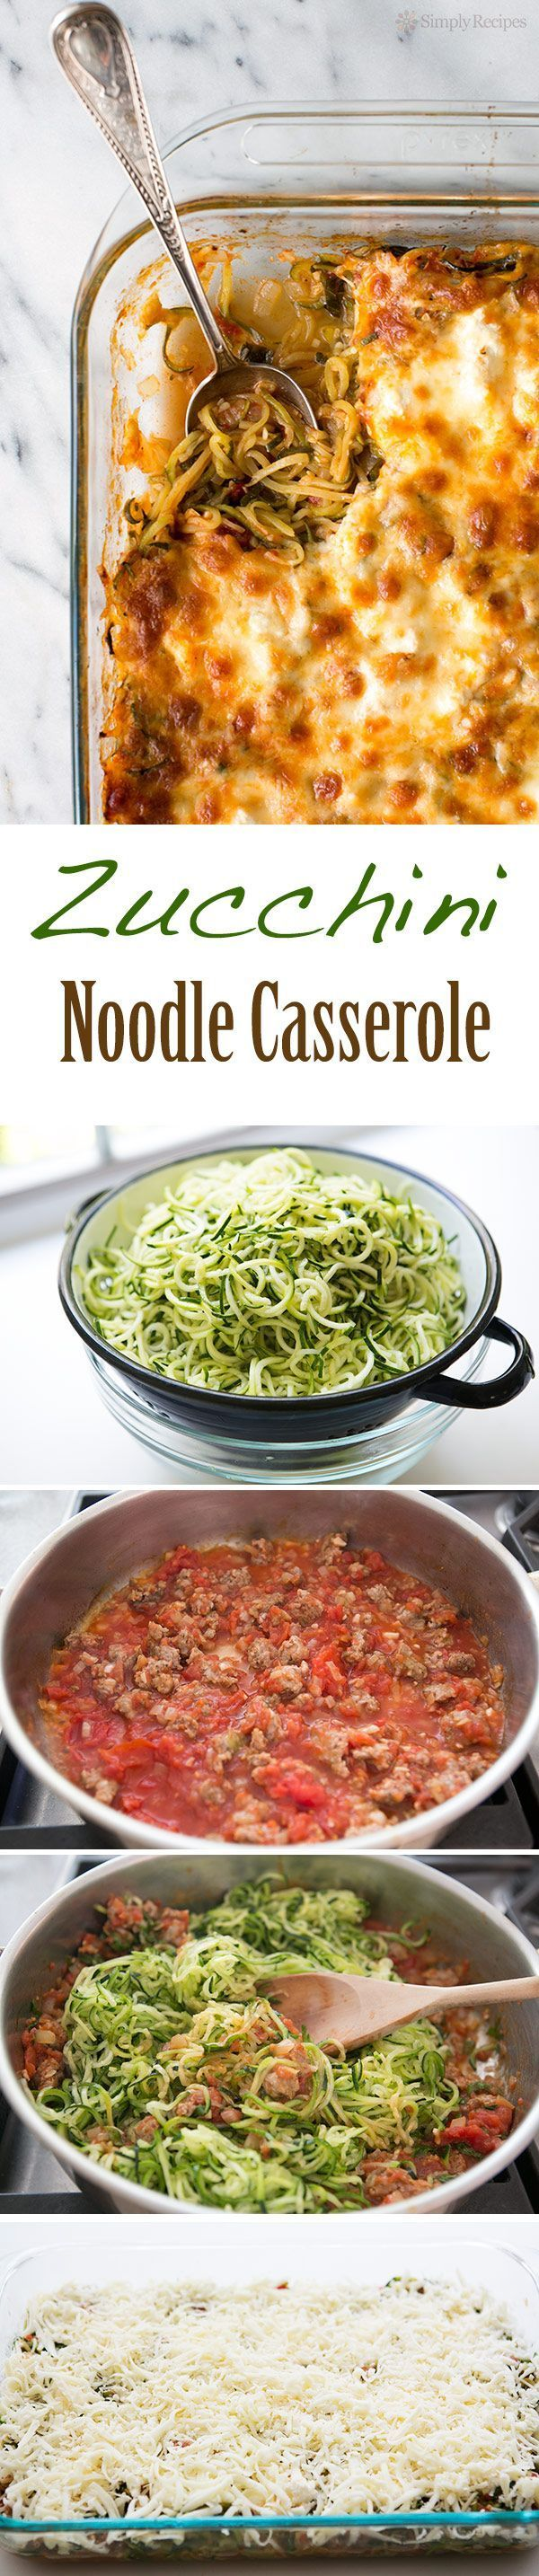 Cheesy Baked Zucchini Noodle Casserole ~ Spiralized zucchini noodles, baked in casserole with sausage tomato sauce, topped with ricotta, mozzarella, parmesan cheeses. Great recipe for a summer holiday potluck! Low carb and gluten-free! ~ SimplyRecipes.com